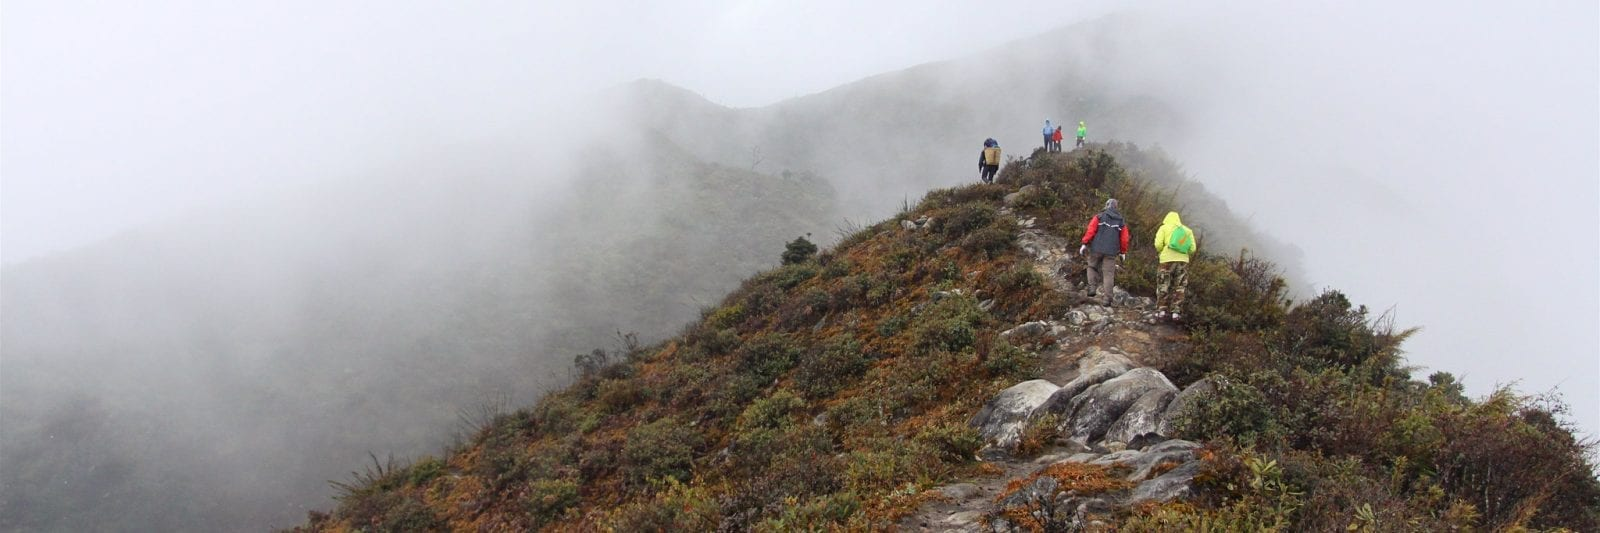 Image of hikers on Bach Moc Luong Tu in Vietnam